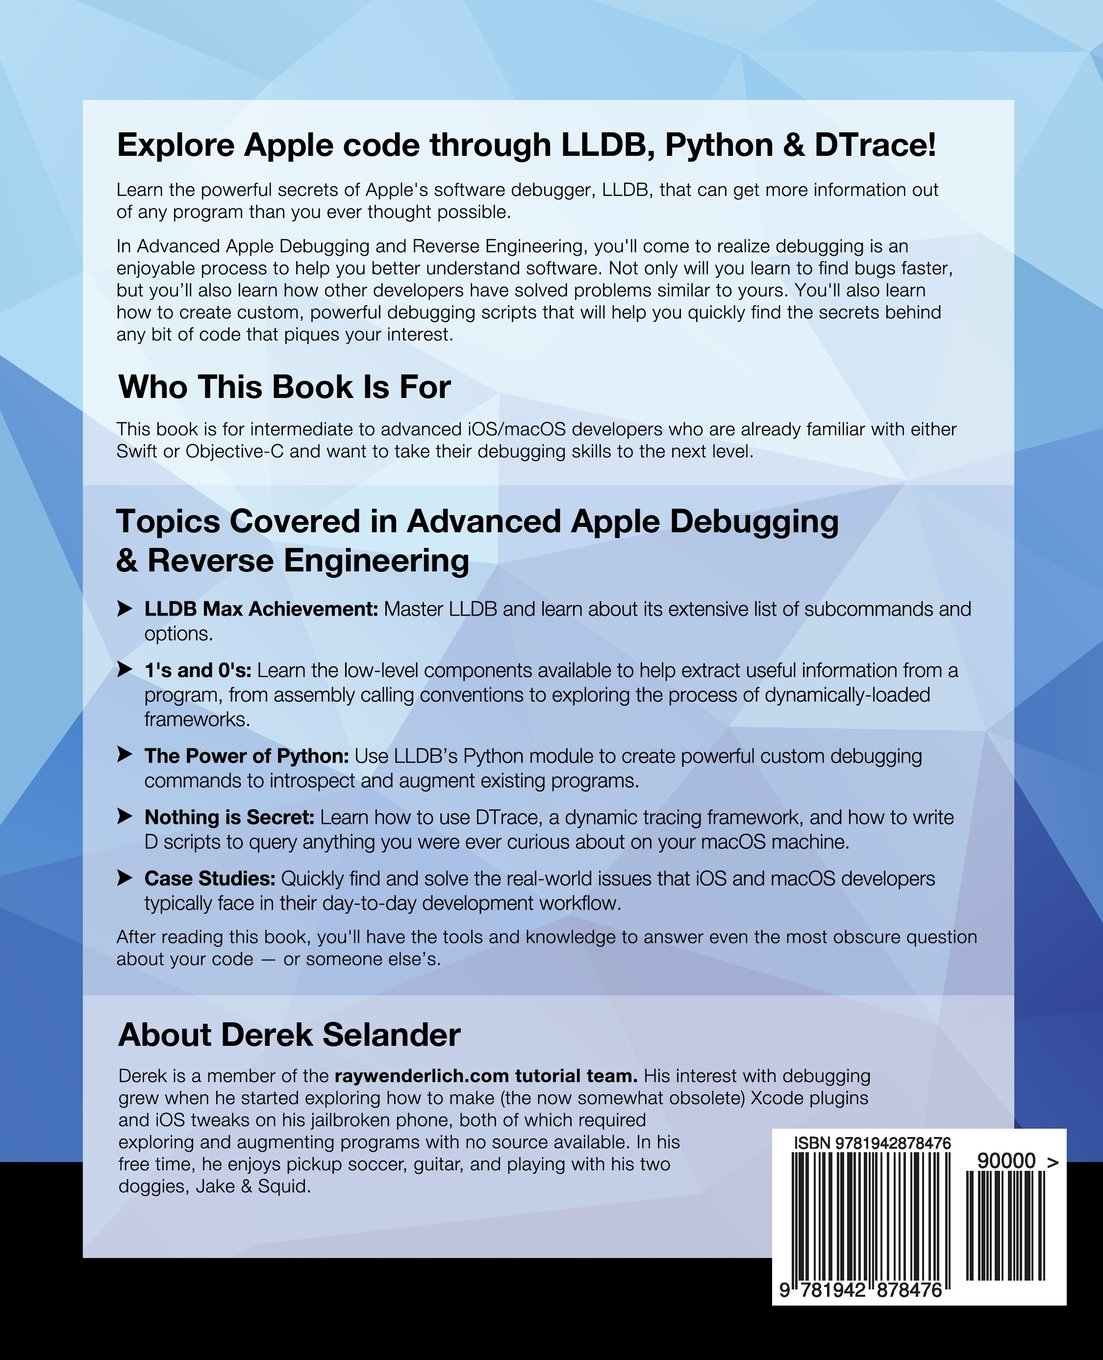 Advanced apple debugging reverse engineering second edition advanced apple debugging reverse engineering second edition exploring apple code through lldb python and dtrace raywenderlich team derek selander baditri Image collections